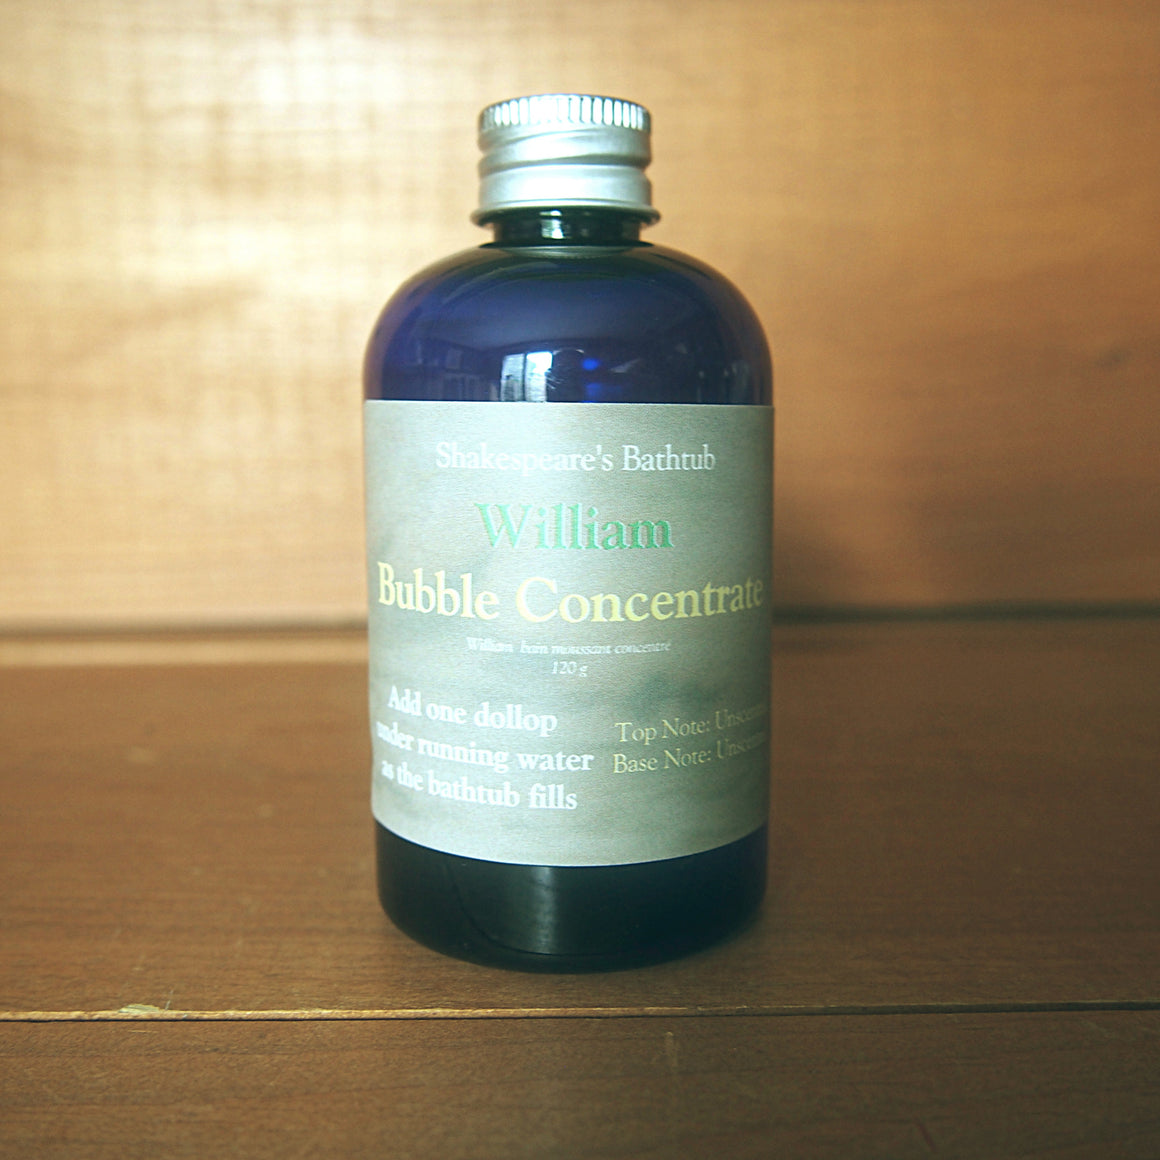 William Bubble Concentrate